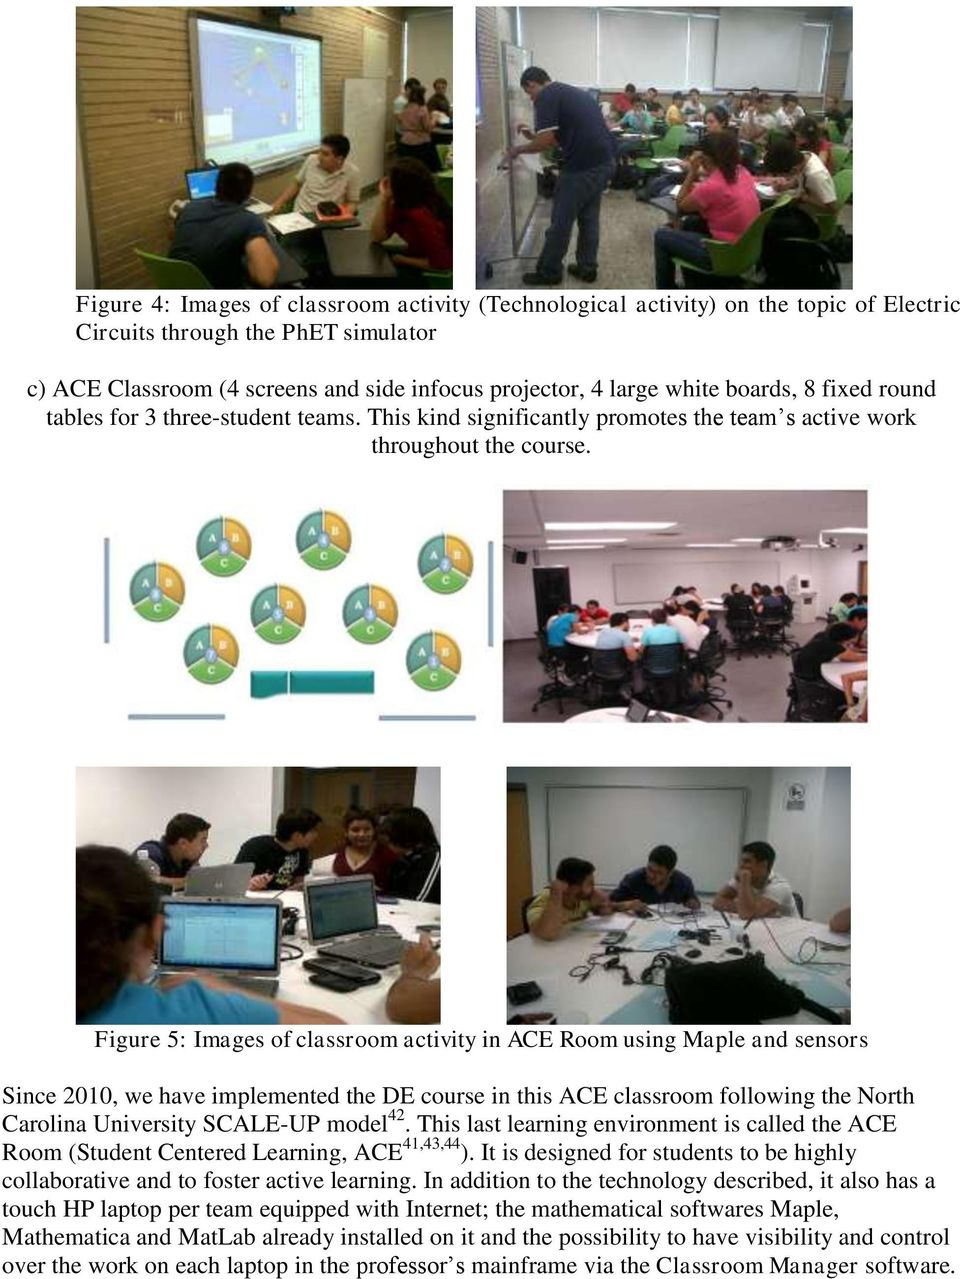 Figure 5: Images of classroom activity in ACE Room using Maple and sensors Since 2010, we have implemented the DE course in this ACE classroom following the North Carolina University SCALE-UP model